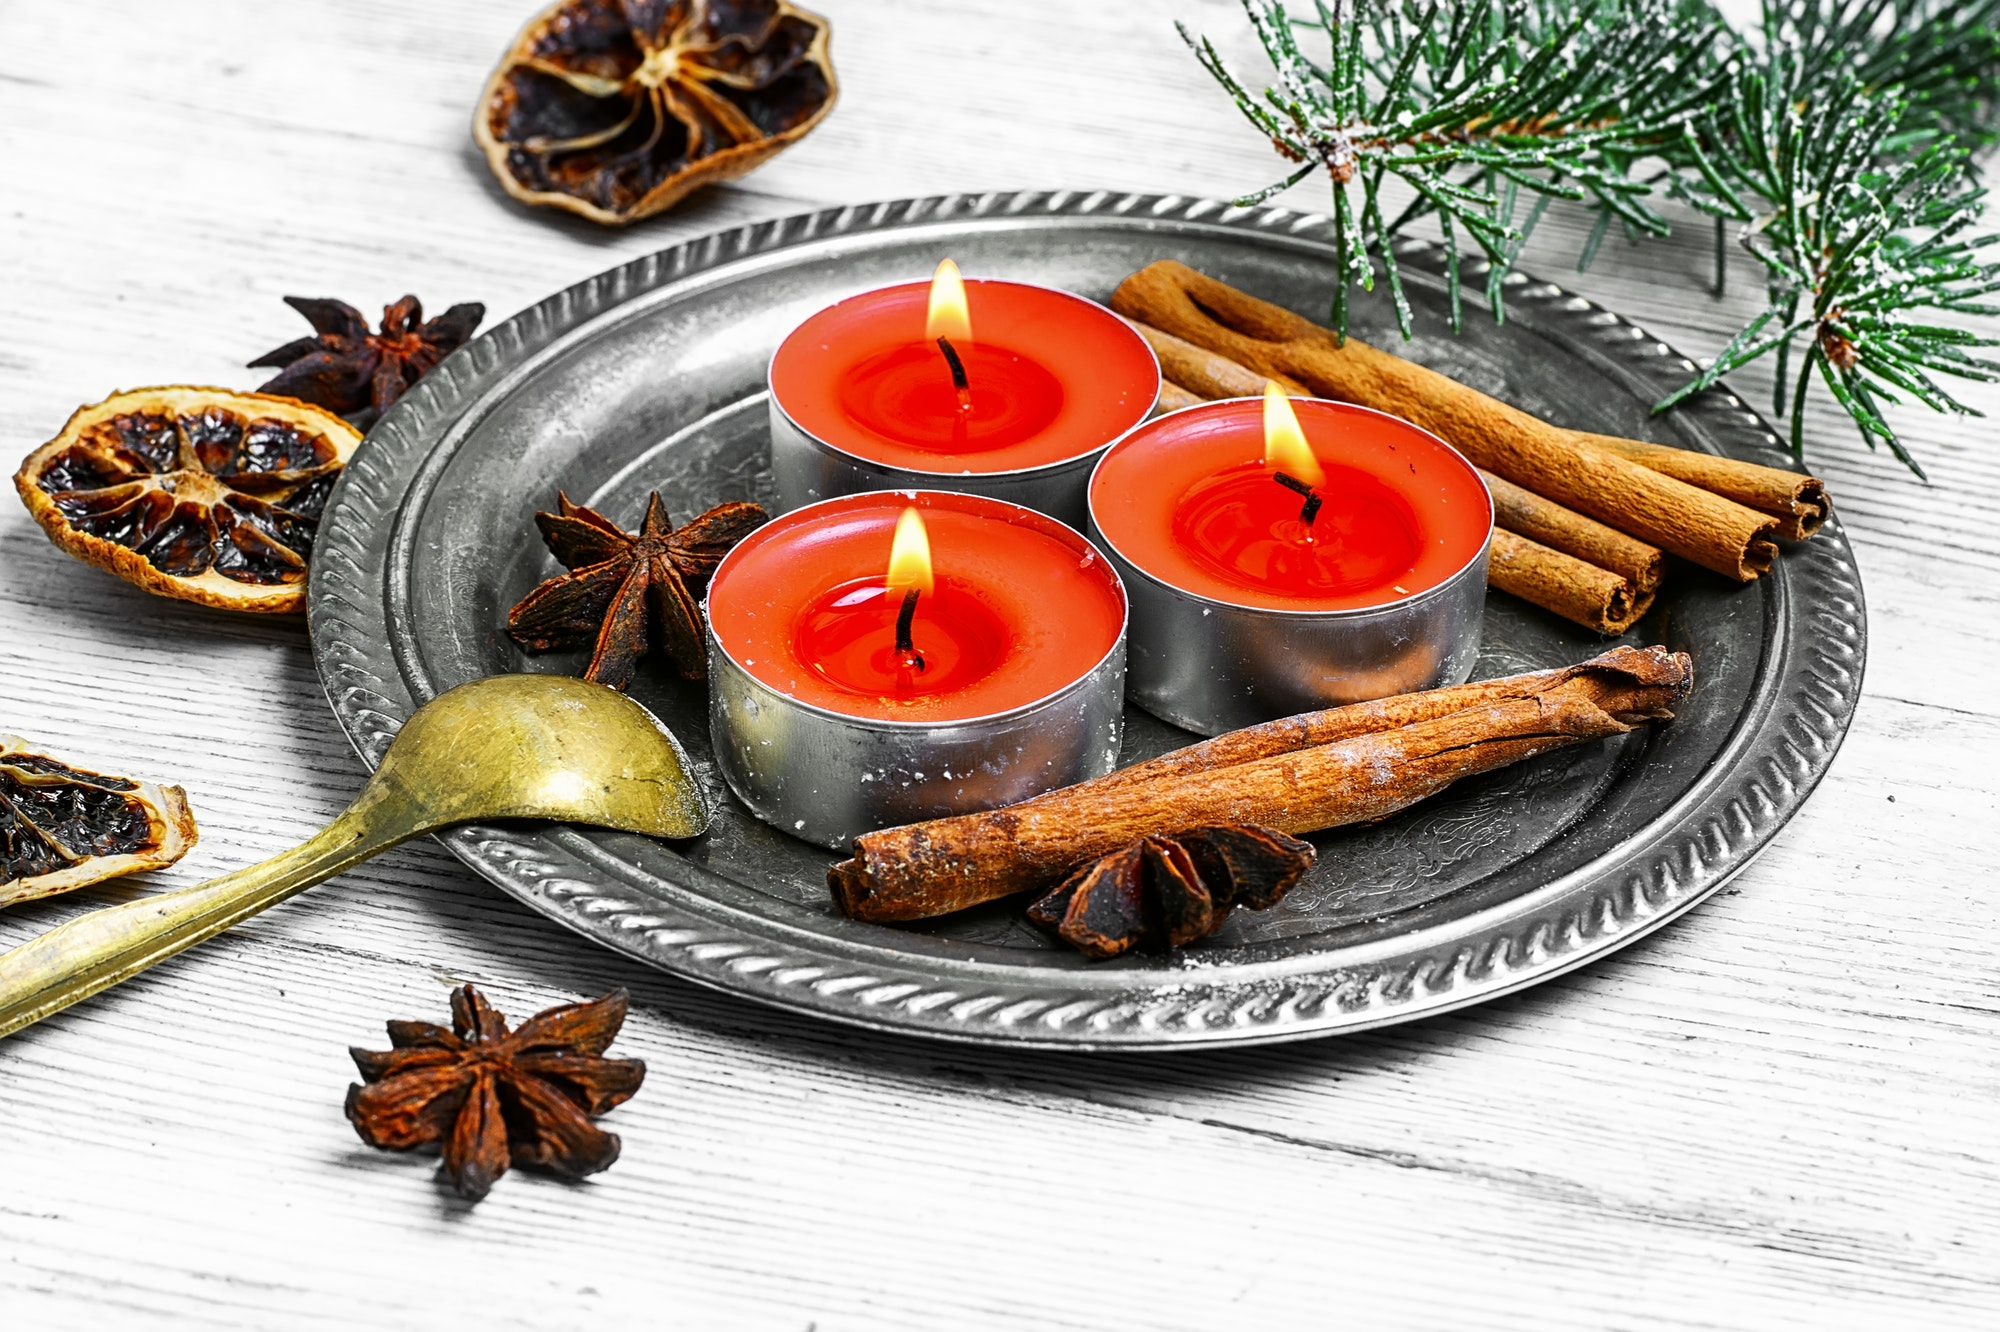 Three Christmas candles